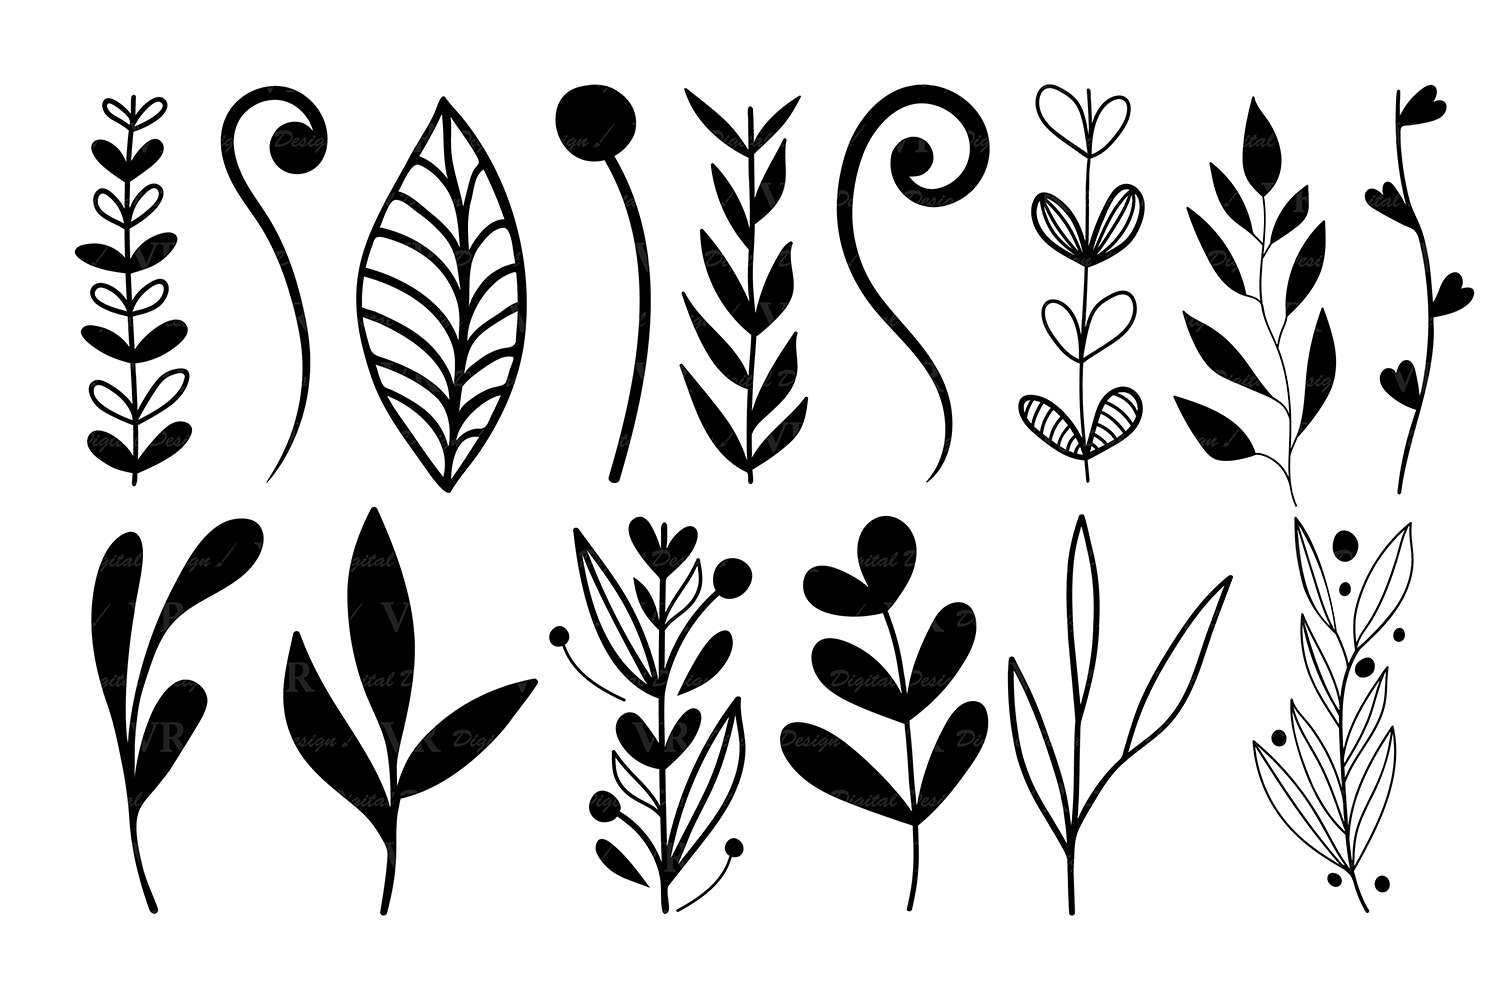 Wreaths Clipart, Hand drawn black design elements, Digital wreath, laurels,  leaves and branches, Wedding clipart, Vector.